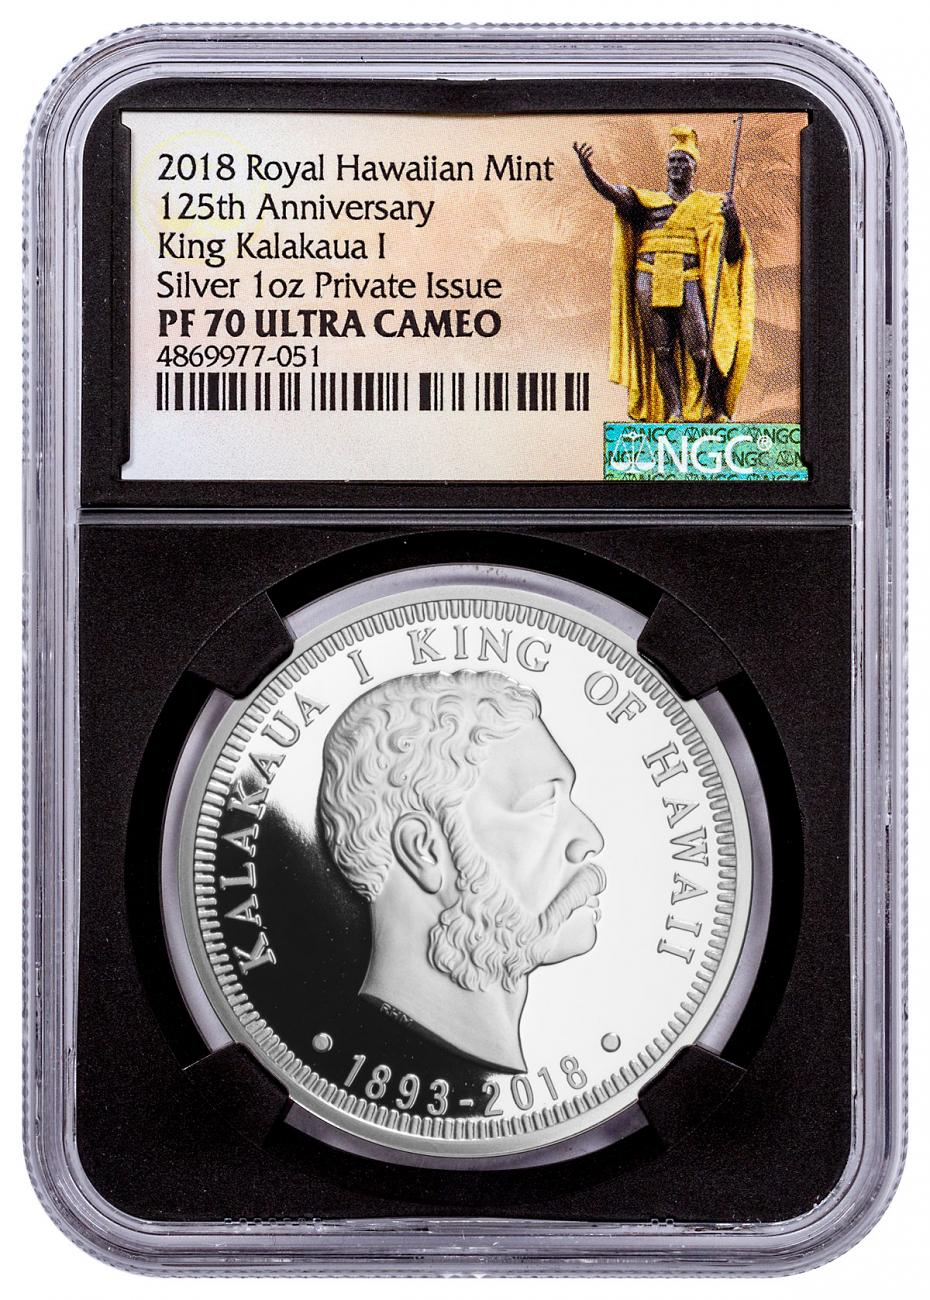 2018 Royal Hawaiian Mint King Kalakaua I 125th Anniversary 1 oz Silver Proof NGC PF70 Black Core Holder